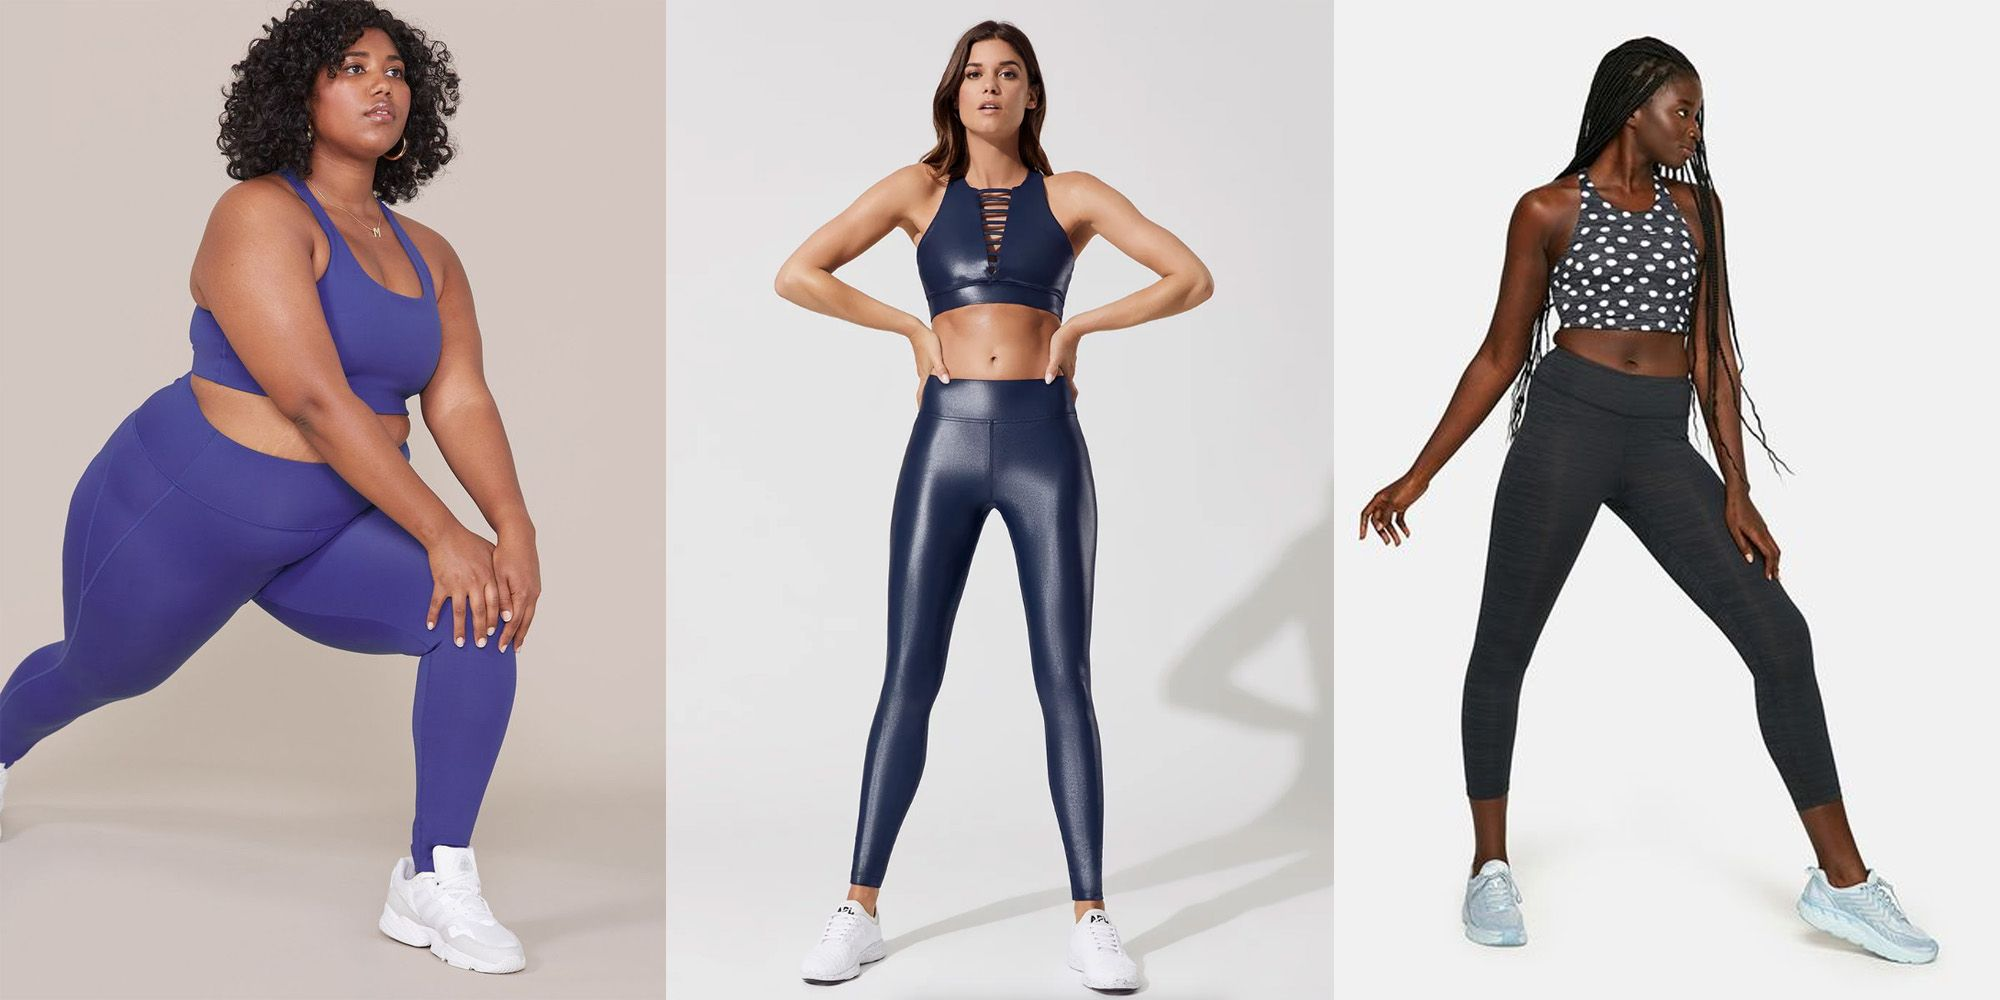 Sex in workout clothes